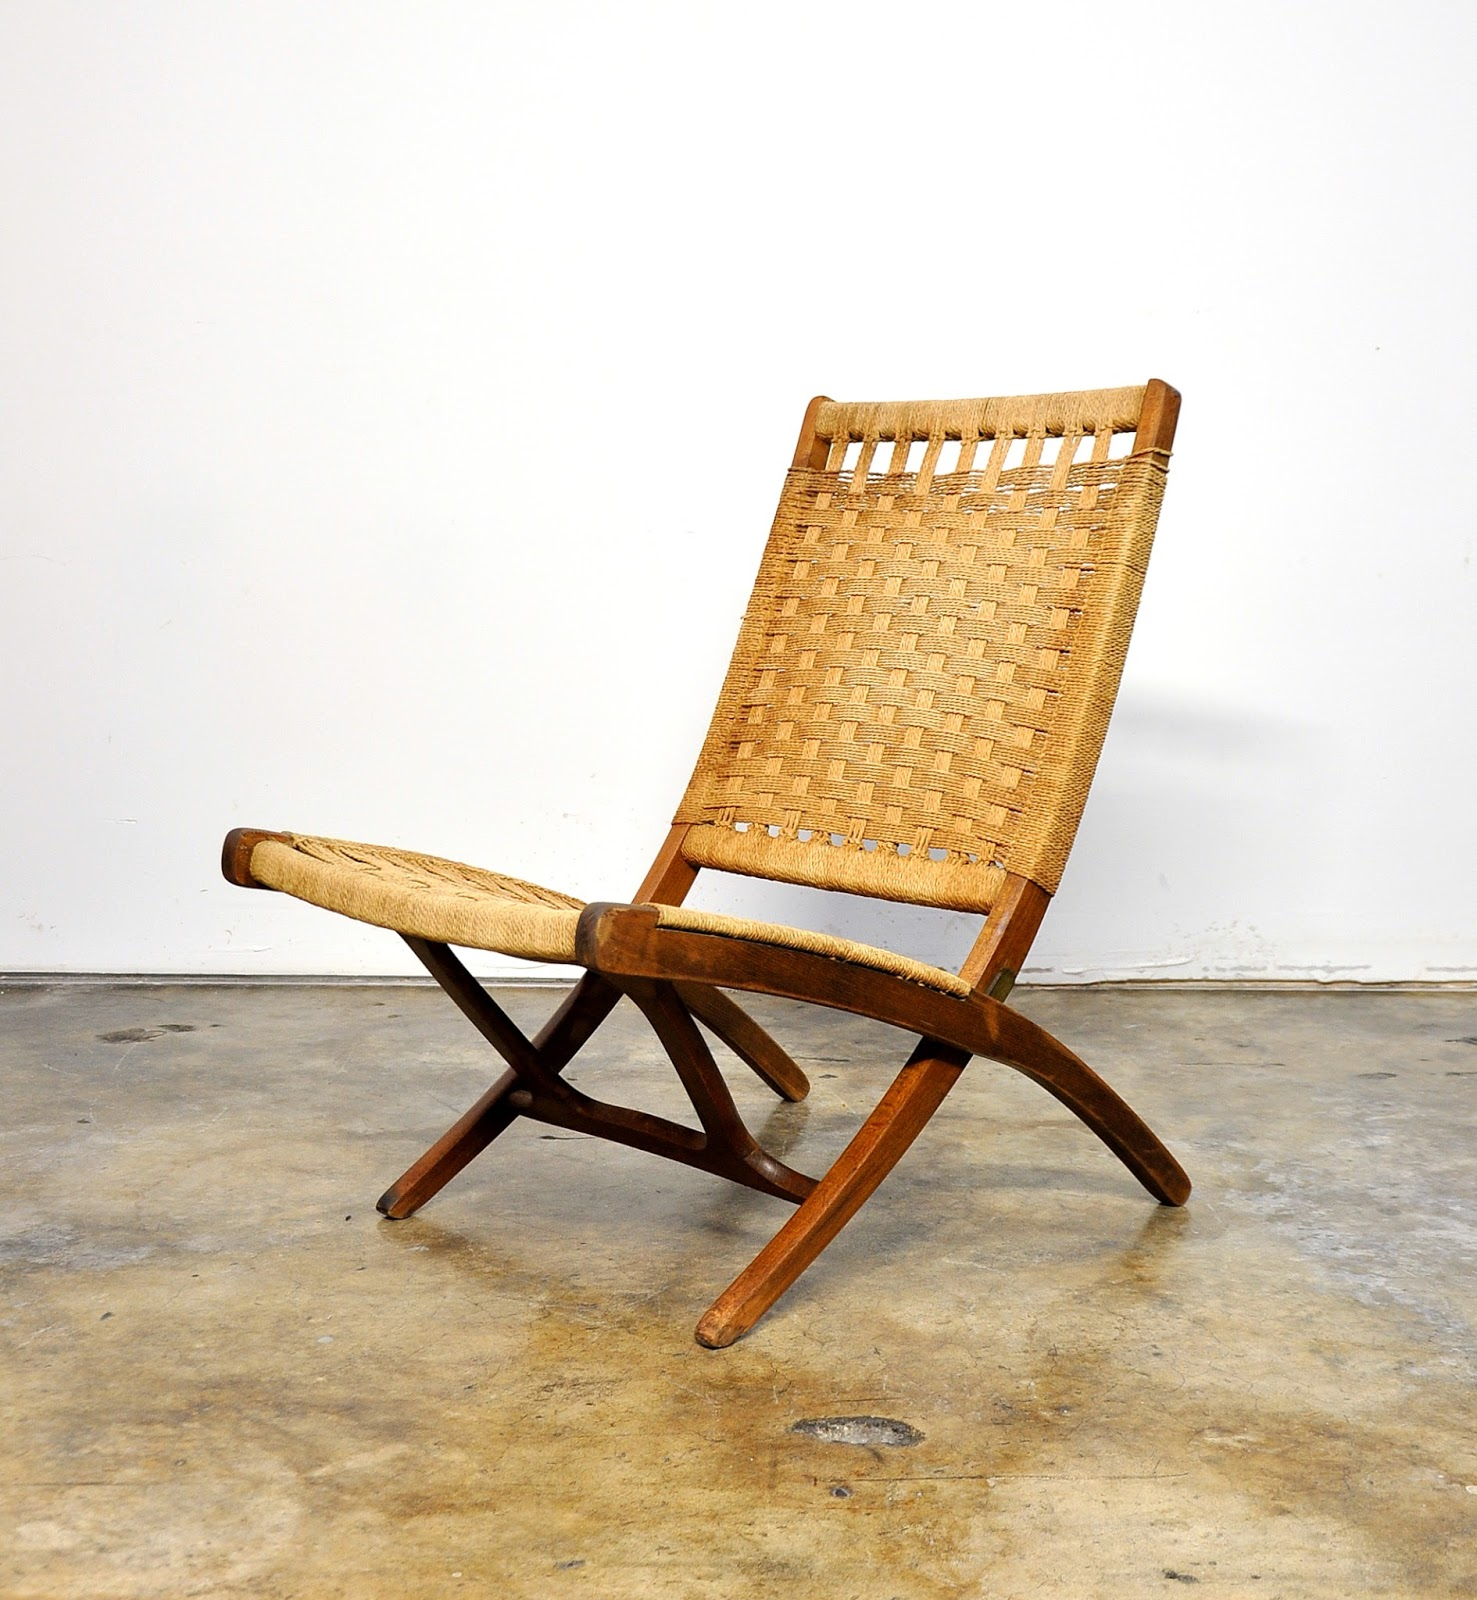 Hans Wegner Folding Chair Select Modern Hans Wegner Style Folding Rope Lounge Or